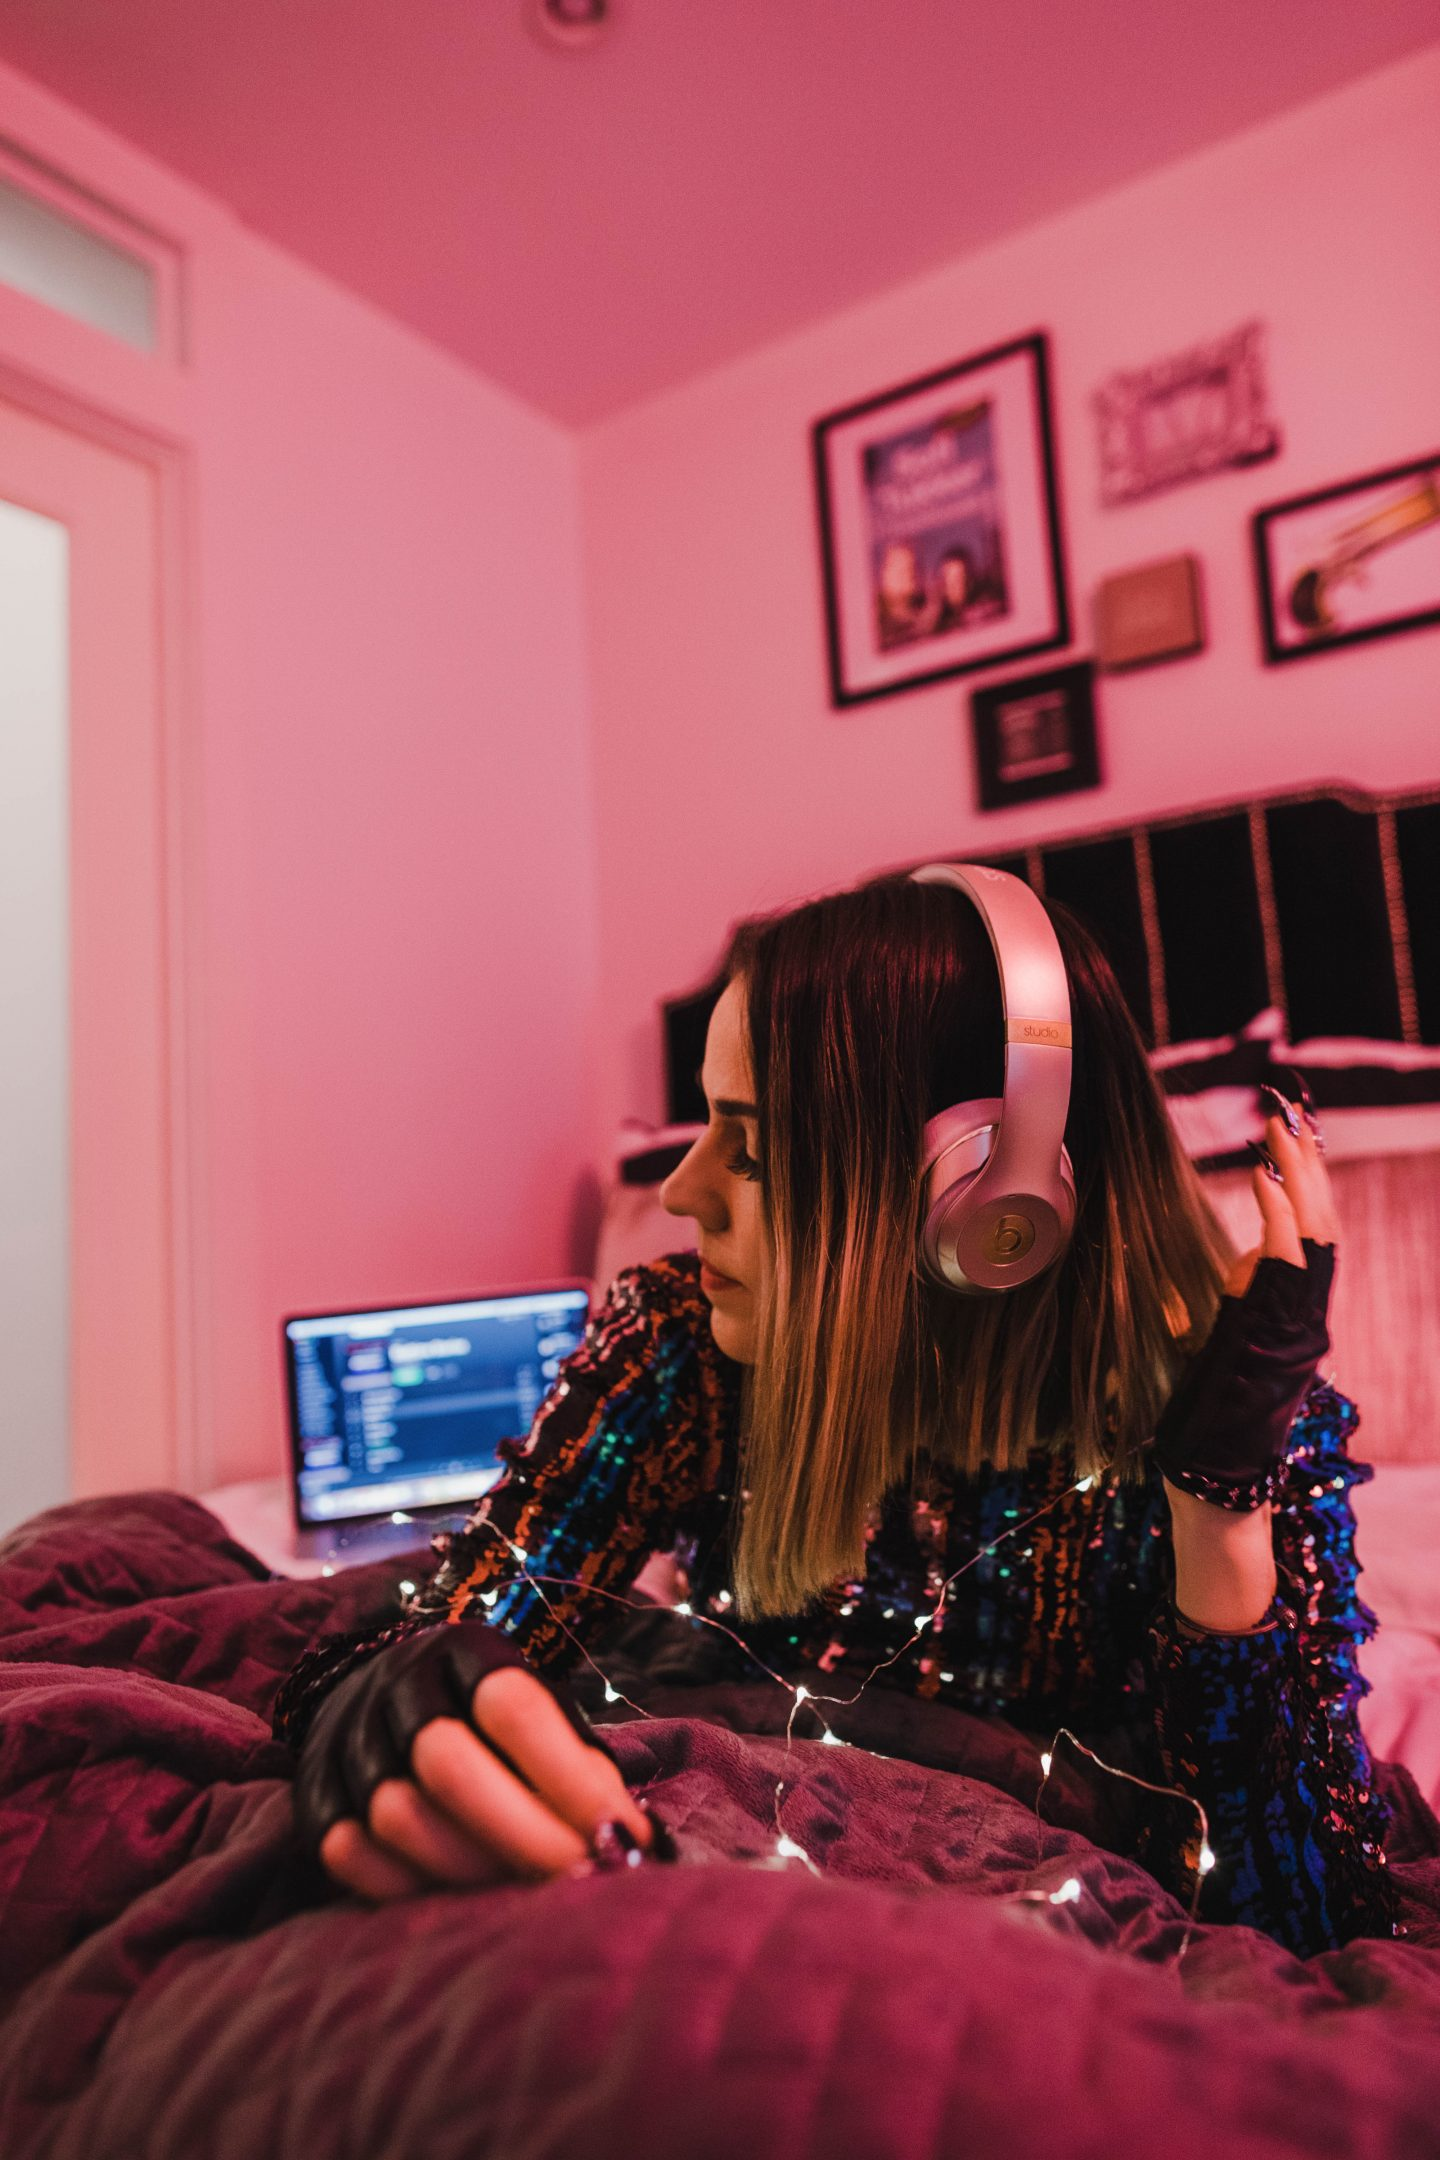 Dress The Population Lola Sheath x Rent The Runway x Neon Lights x Holiday Playlist x Cool Girl Home Interior Inspo